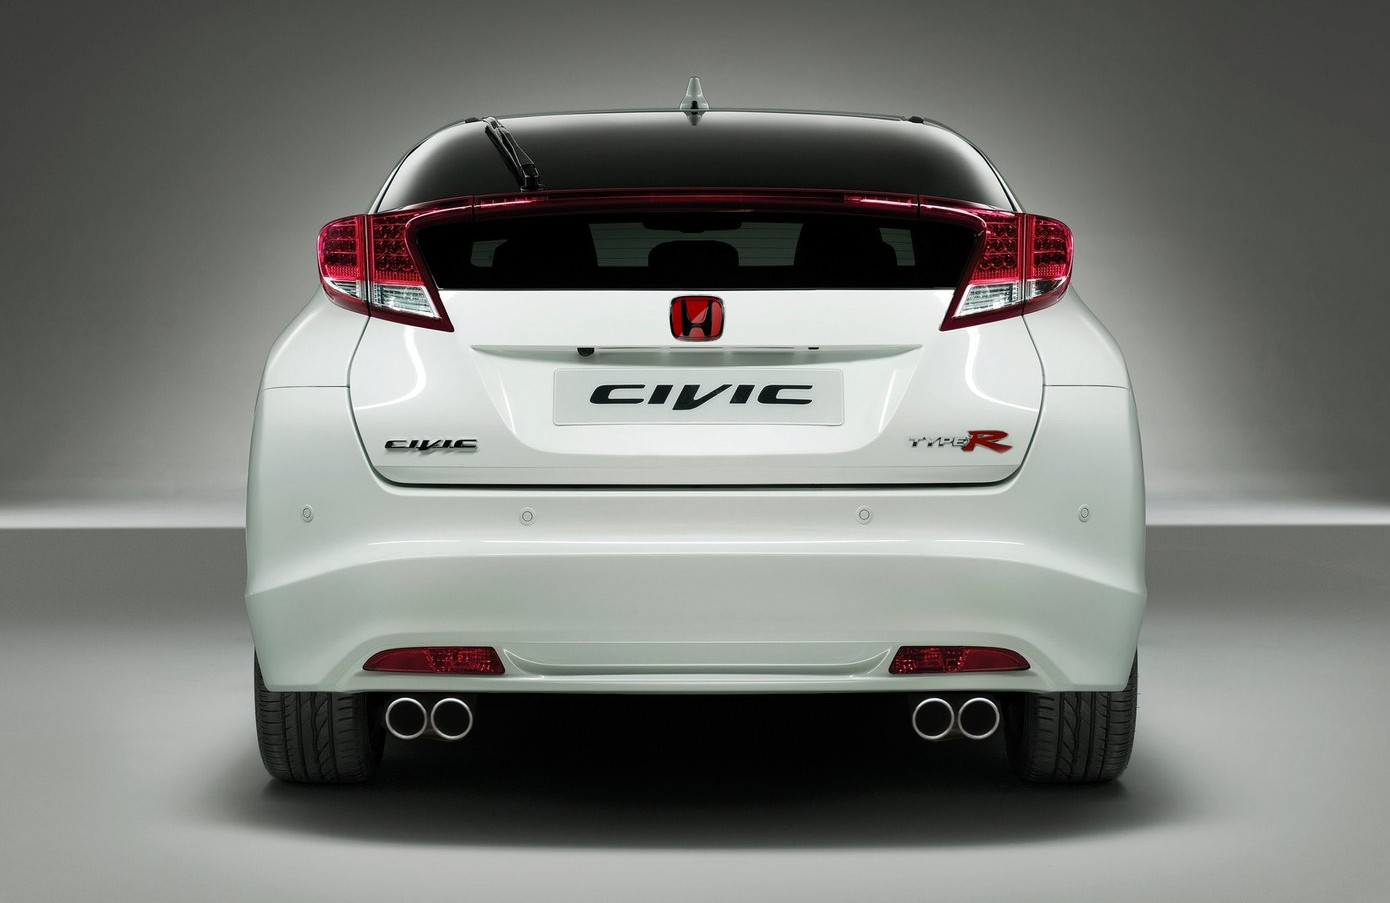 2015 Honda Civic - Review, Price, Engine, Design, Release